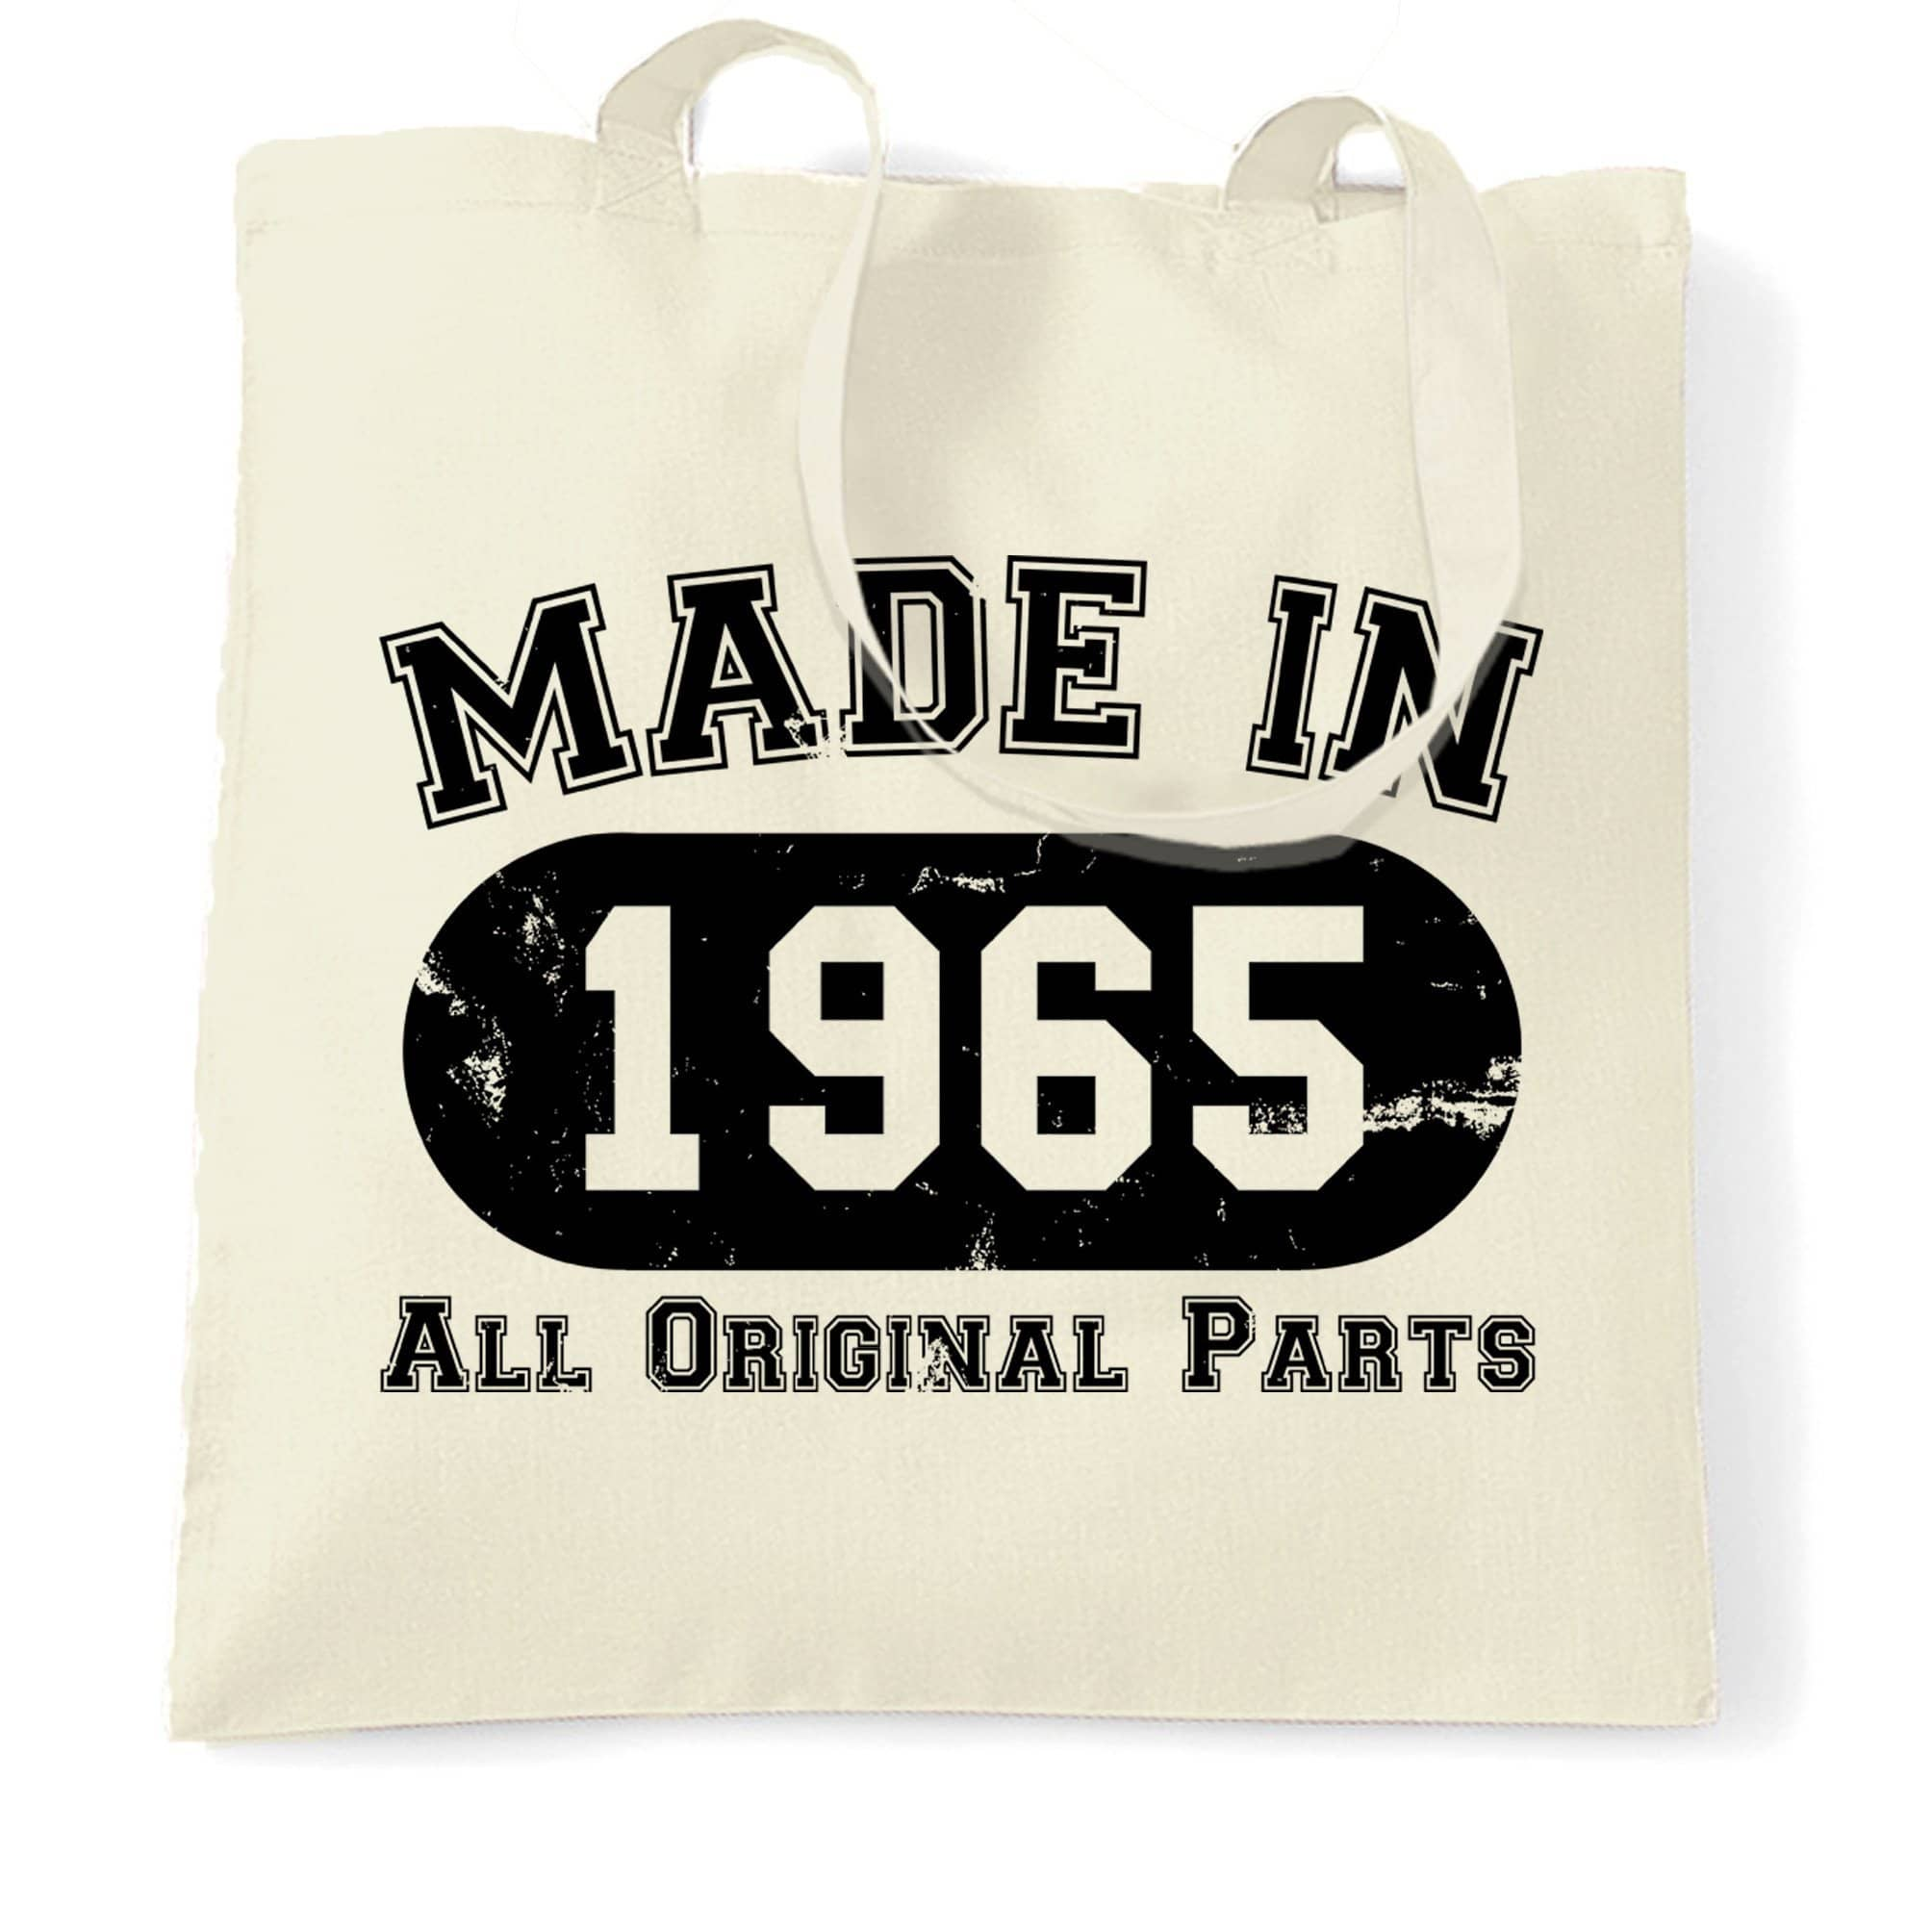 Made in 1965 All Original Parts Tote Bag [Distressed]